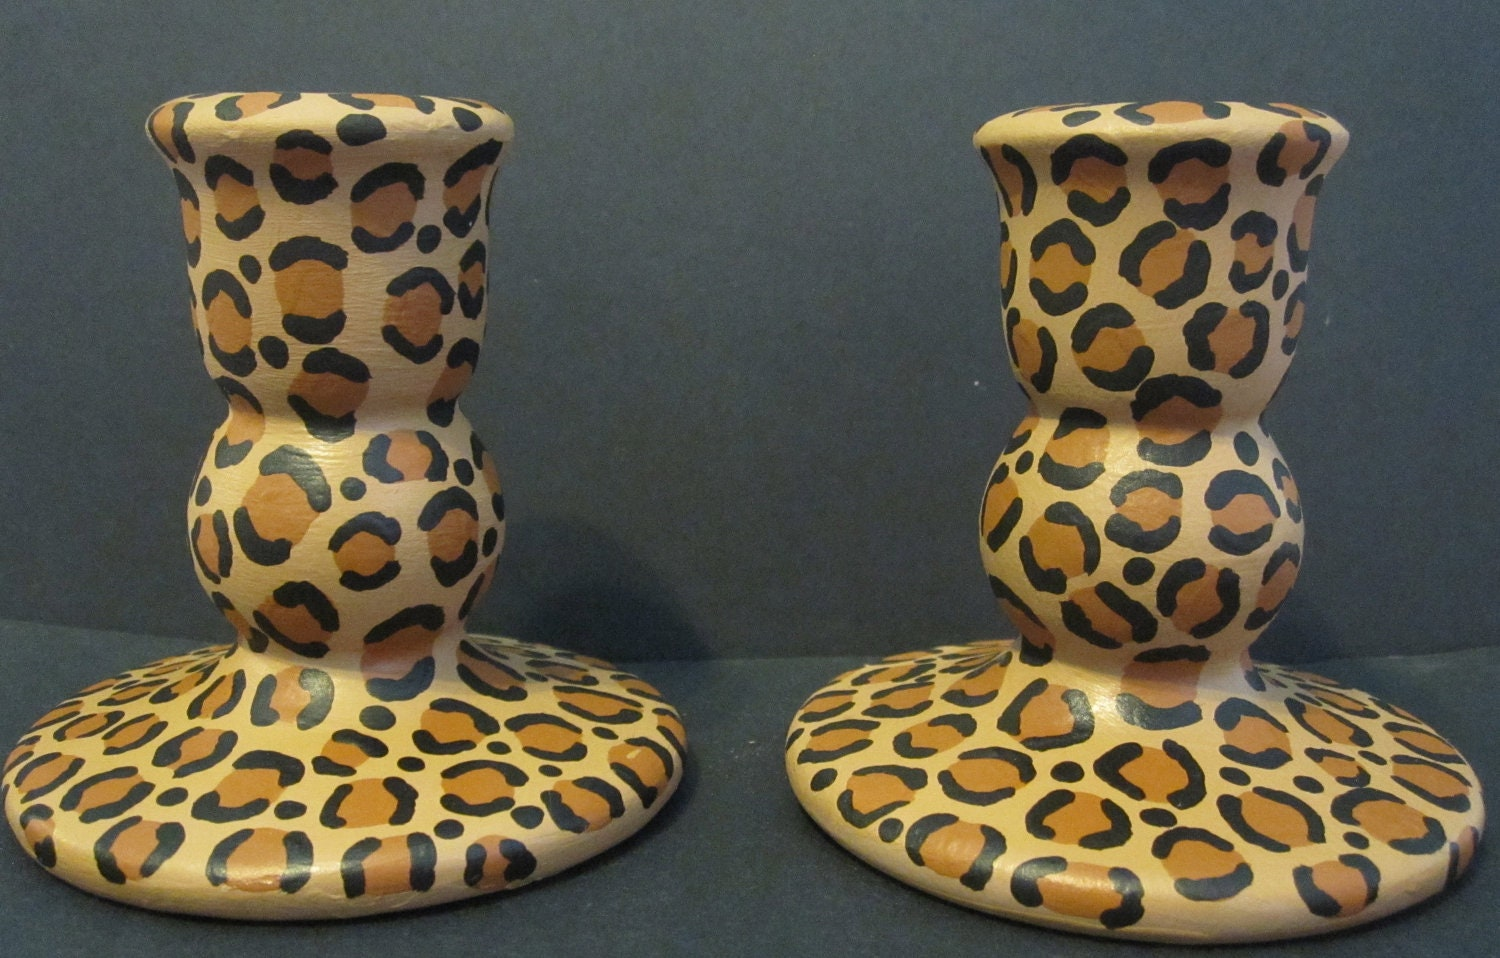 For the room that needs that exotic touch, this set of animal print candle holders is just the thing. Made of glazed ceramic, these make great accents! My Account.